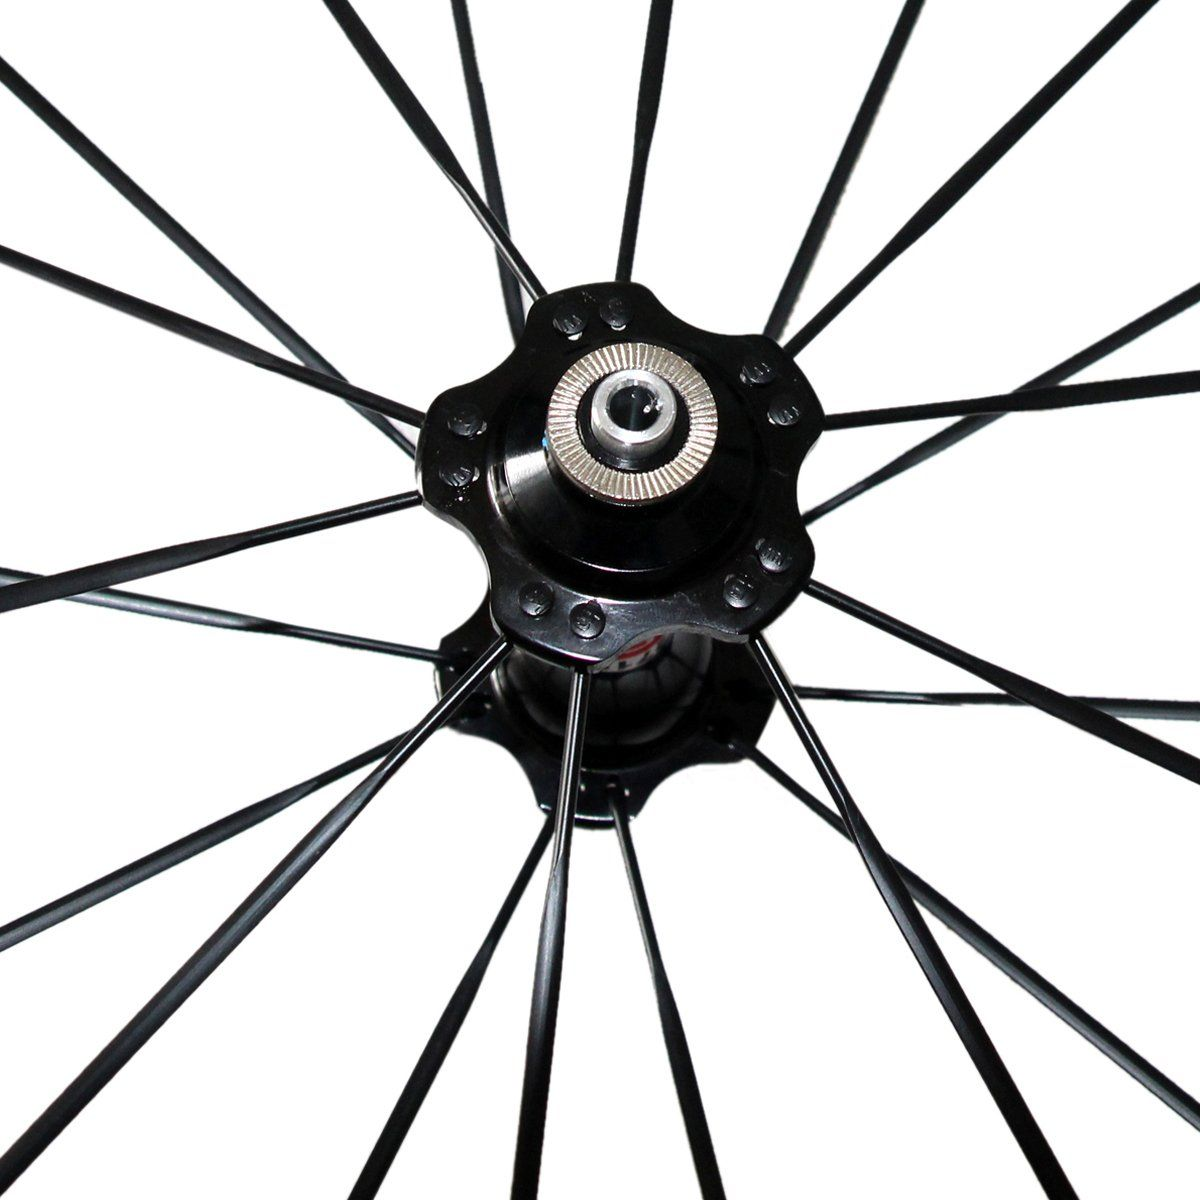 How To Convert To Disc Brakes From V Brakes On Mountain Bike